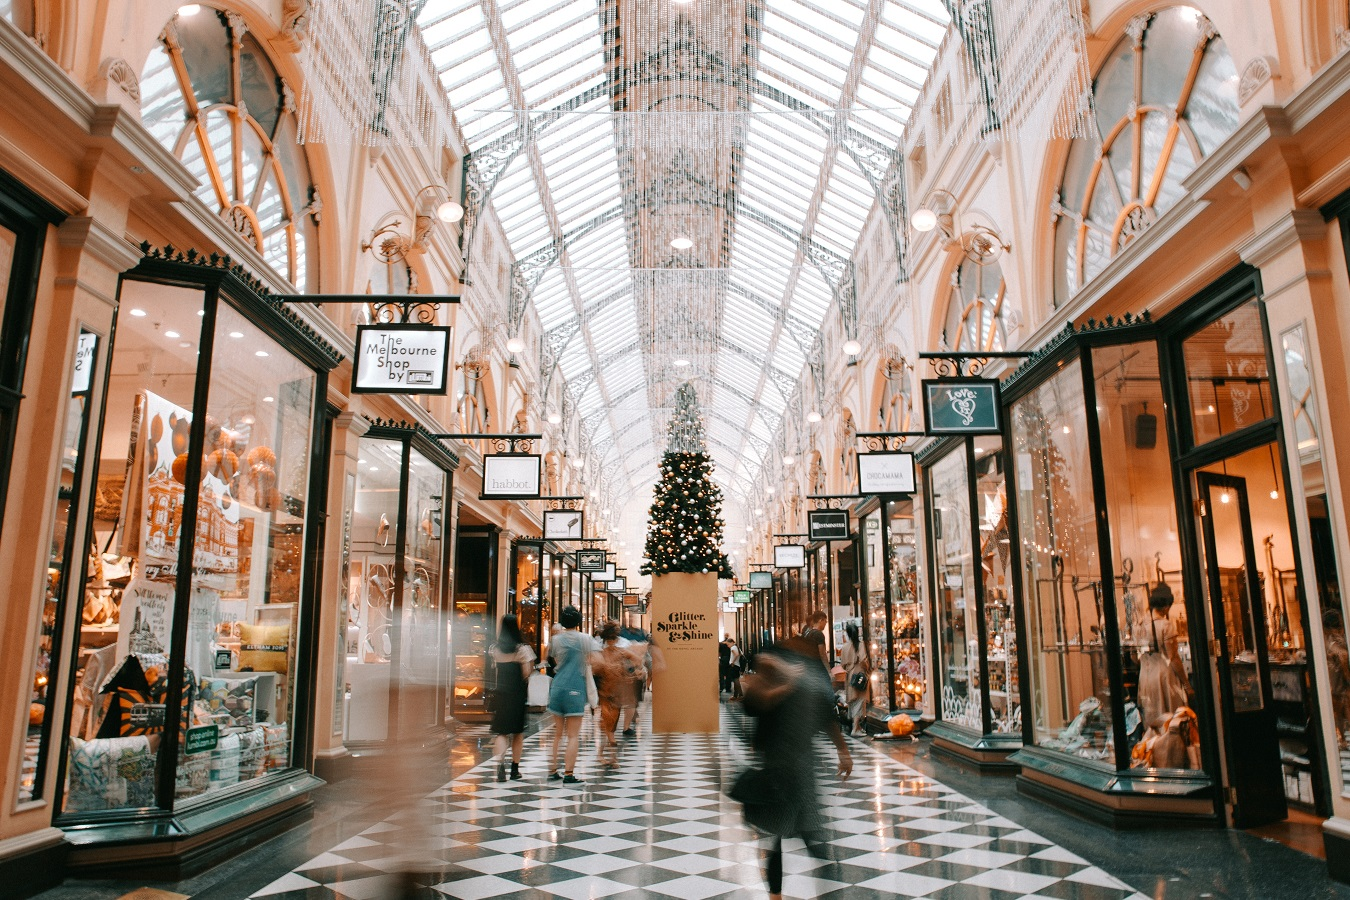 4 TIPS FOR SMART SHOPPING ON BOXING DAY